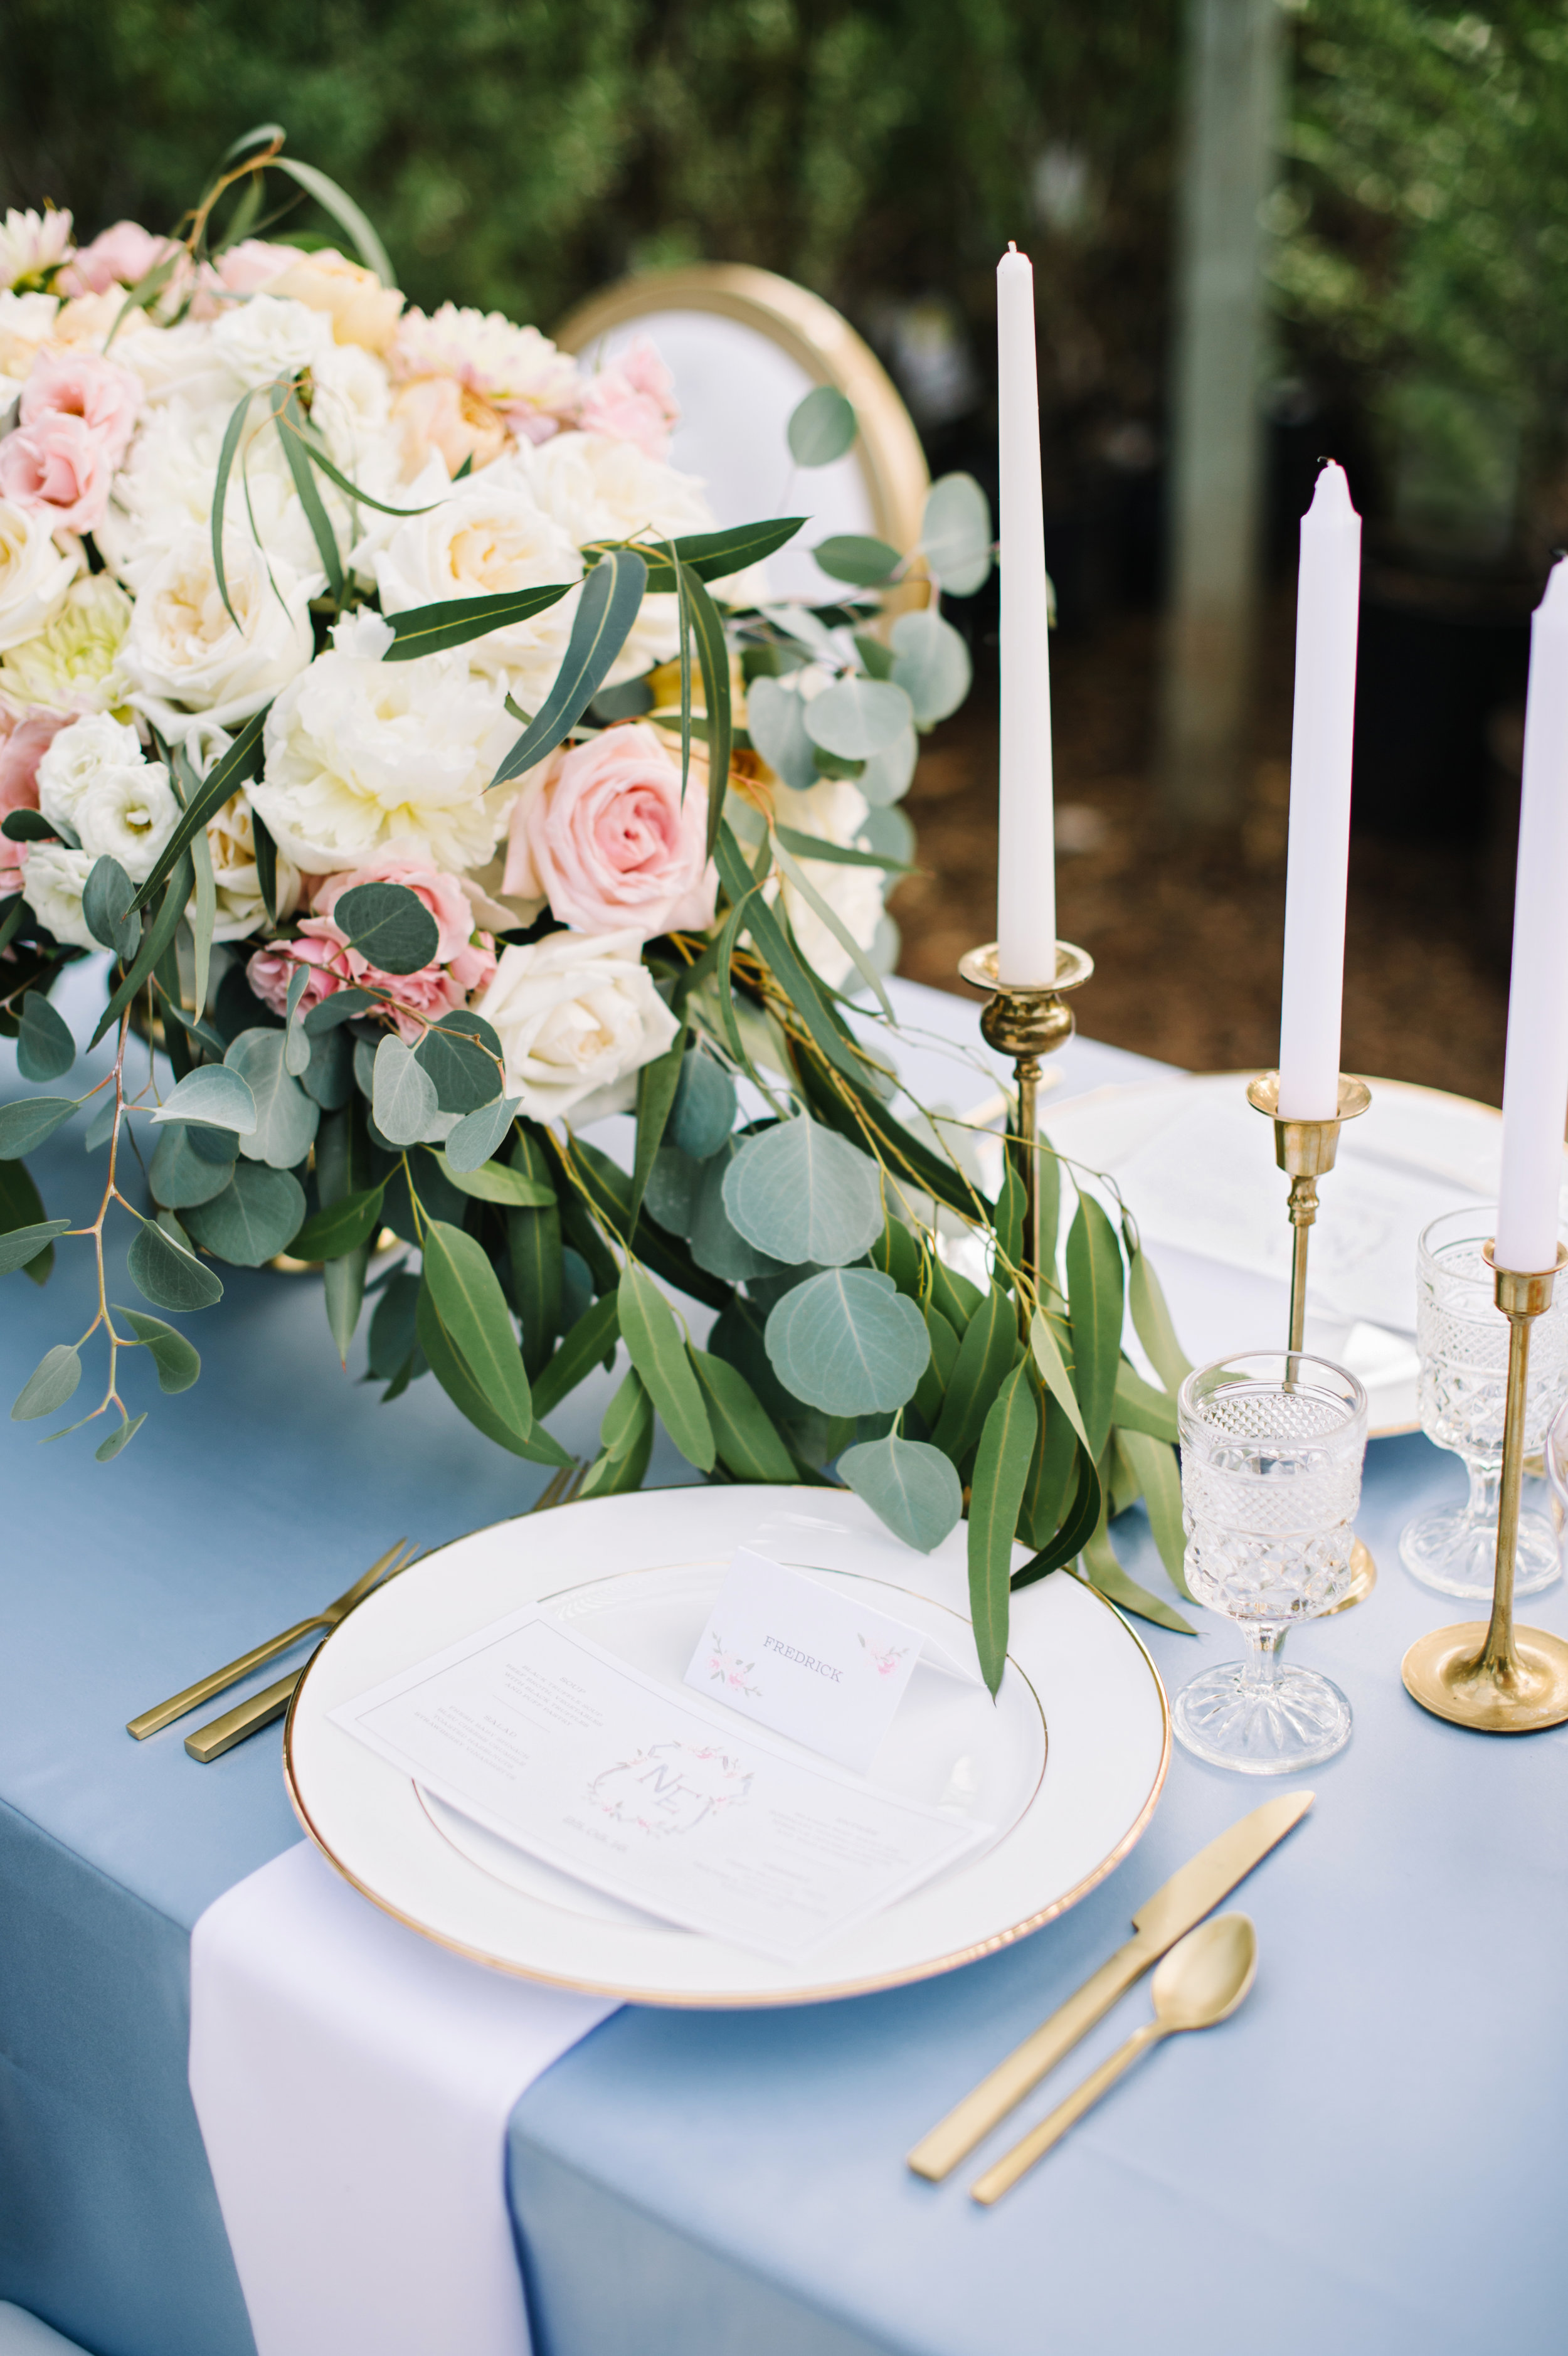 Corrina Walker Photography | Claudette Marie Events | Orange Trunk Vintage Styling | Gathered Table Supply